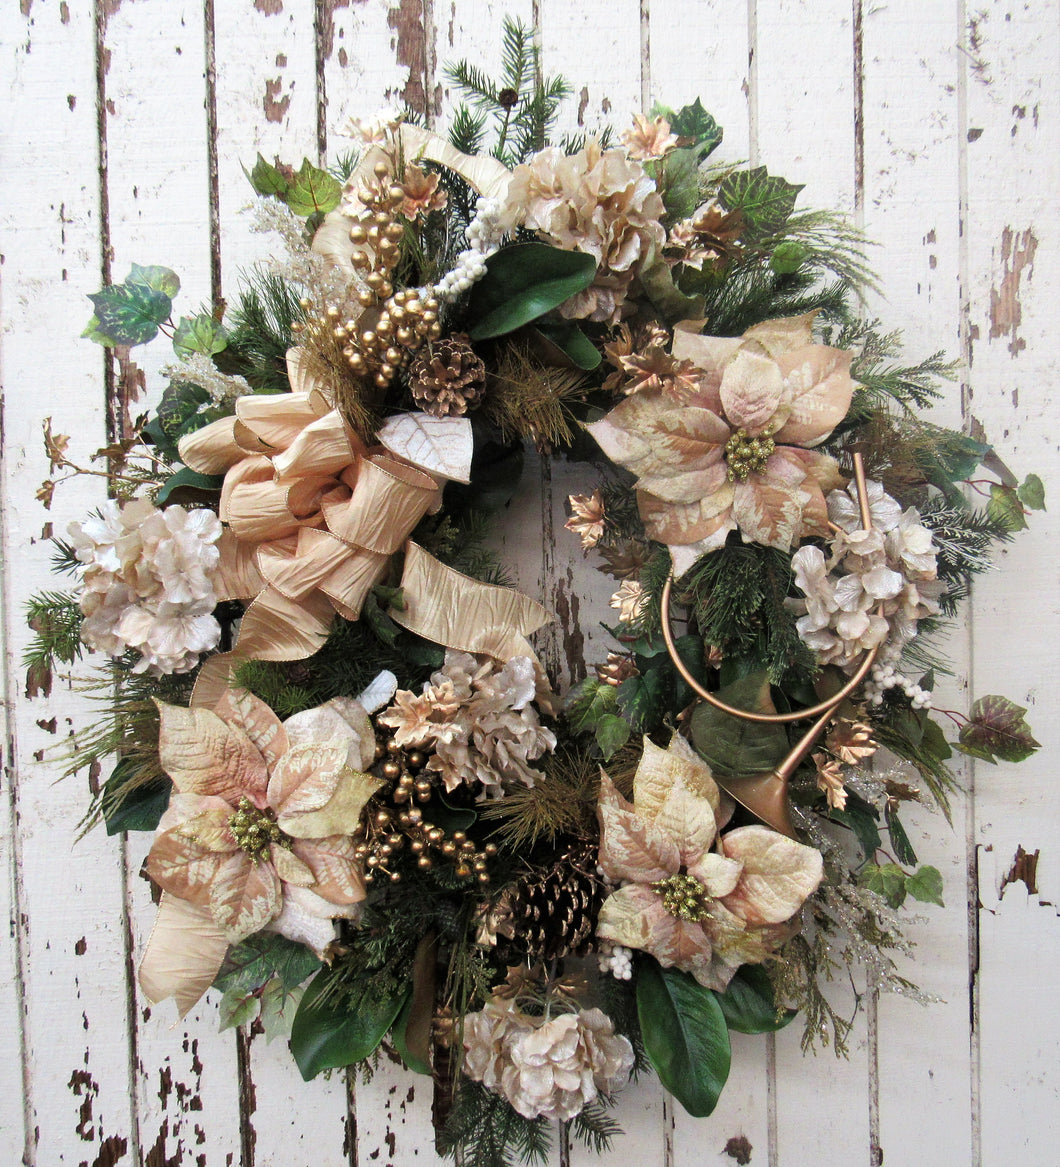 Gallery/Hol6 - April's Garden Wreath